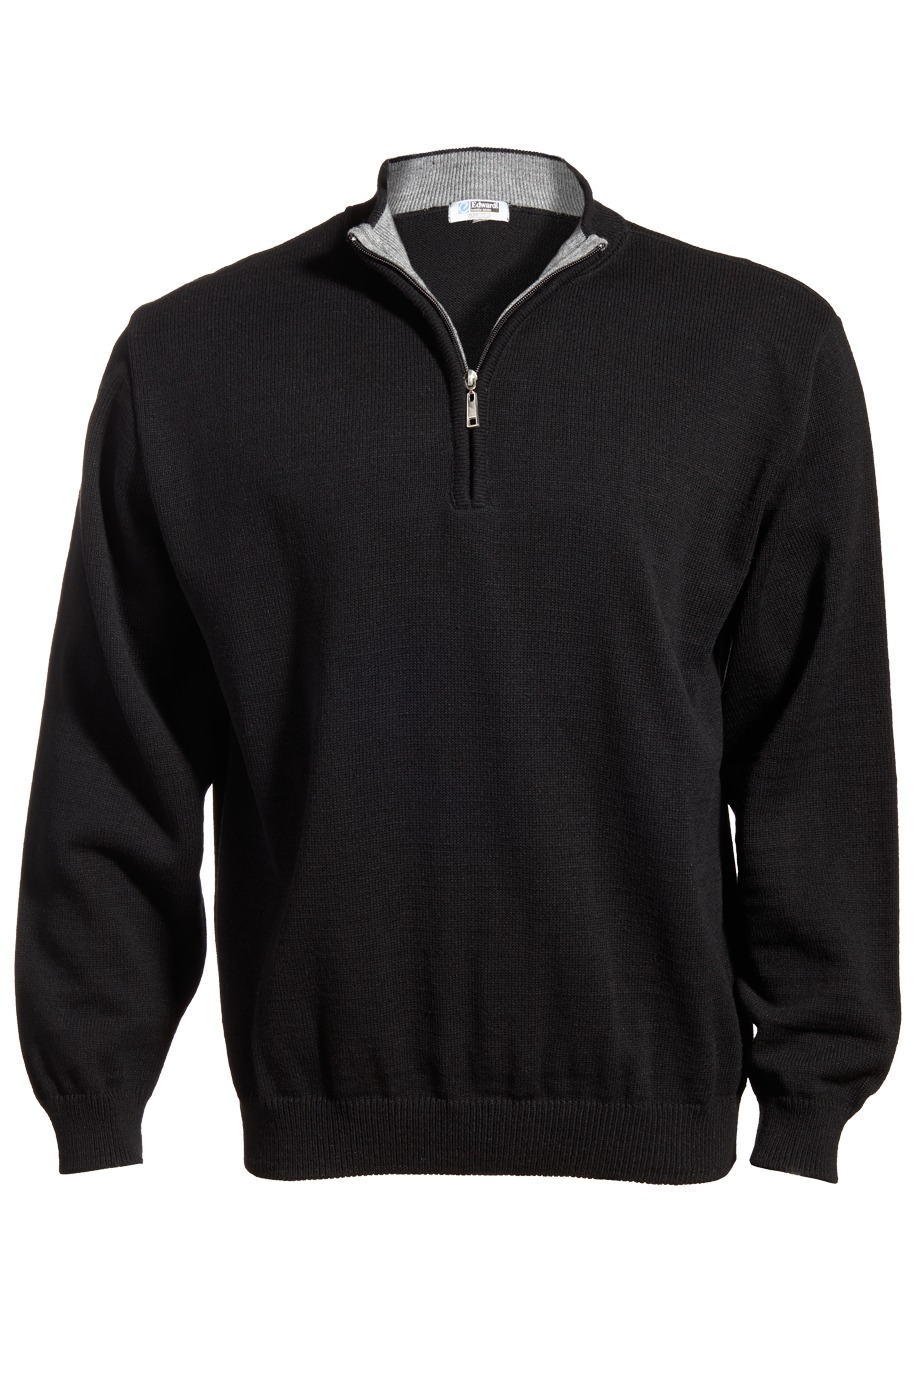 Edwards Garment 4012 - Men's Quarter-Zip Acrylic Sweater